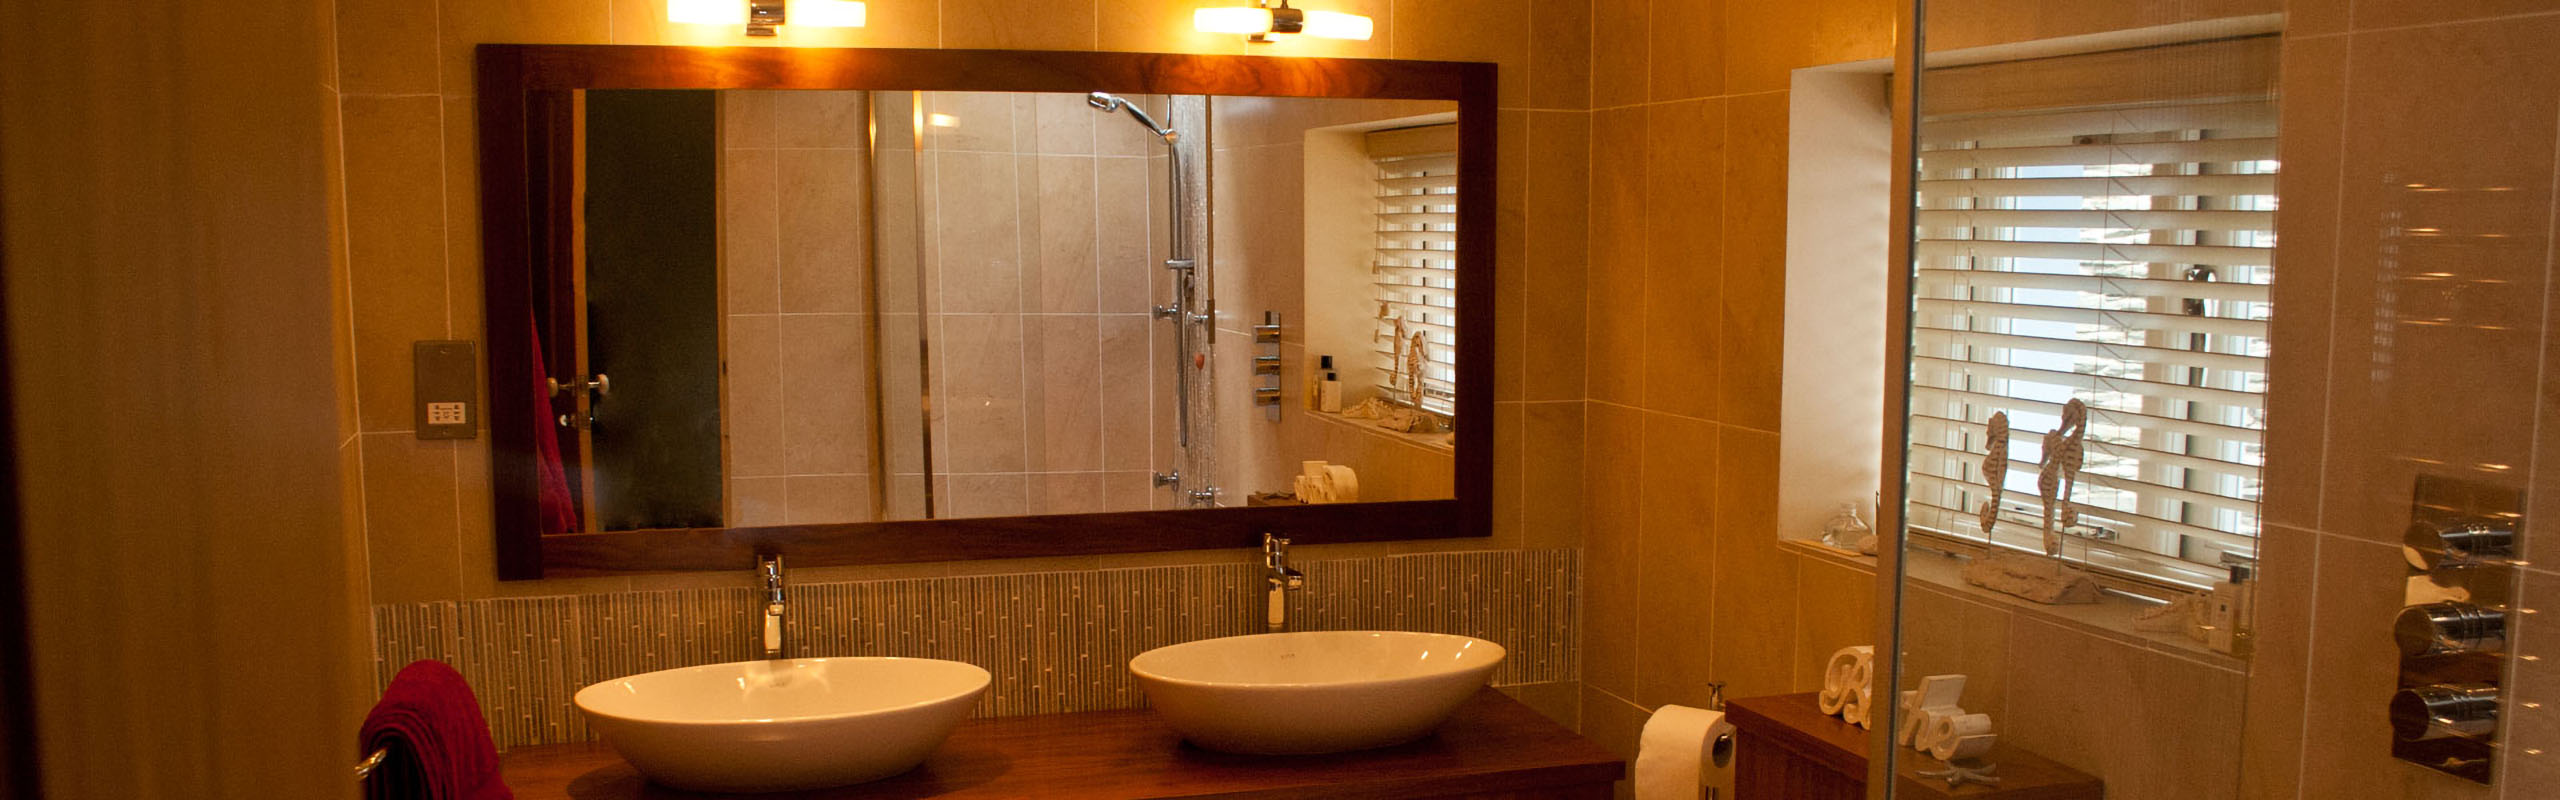 Bathroom Renovation from Dyfi Renovation Ltd